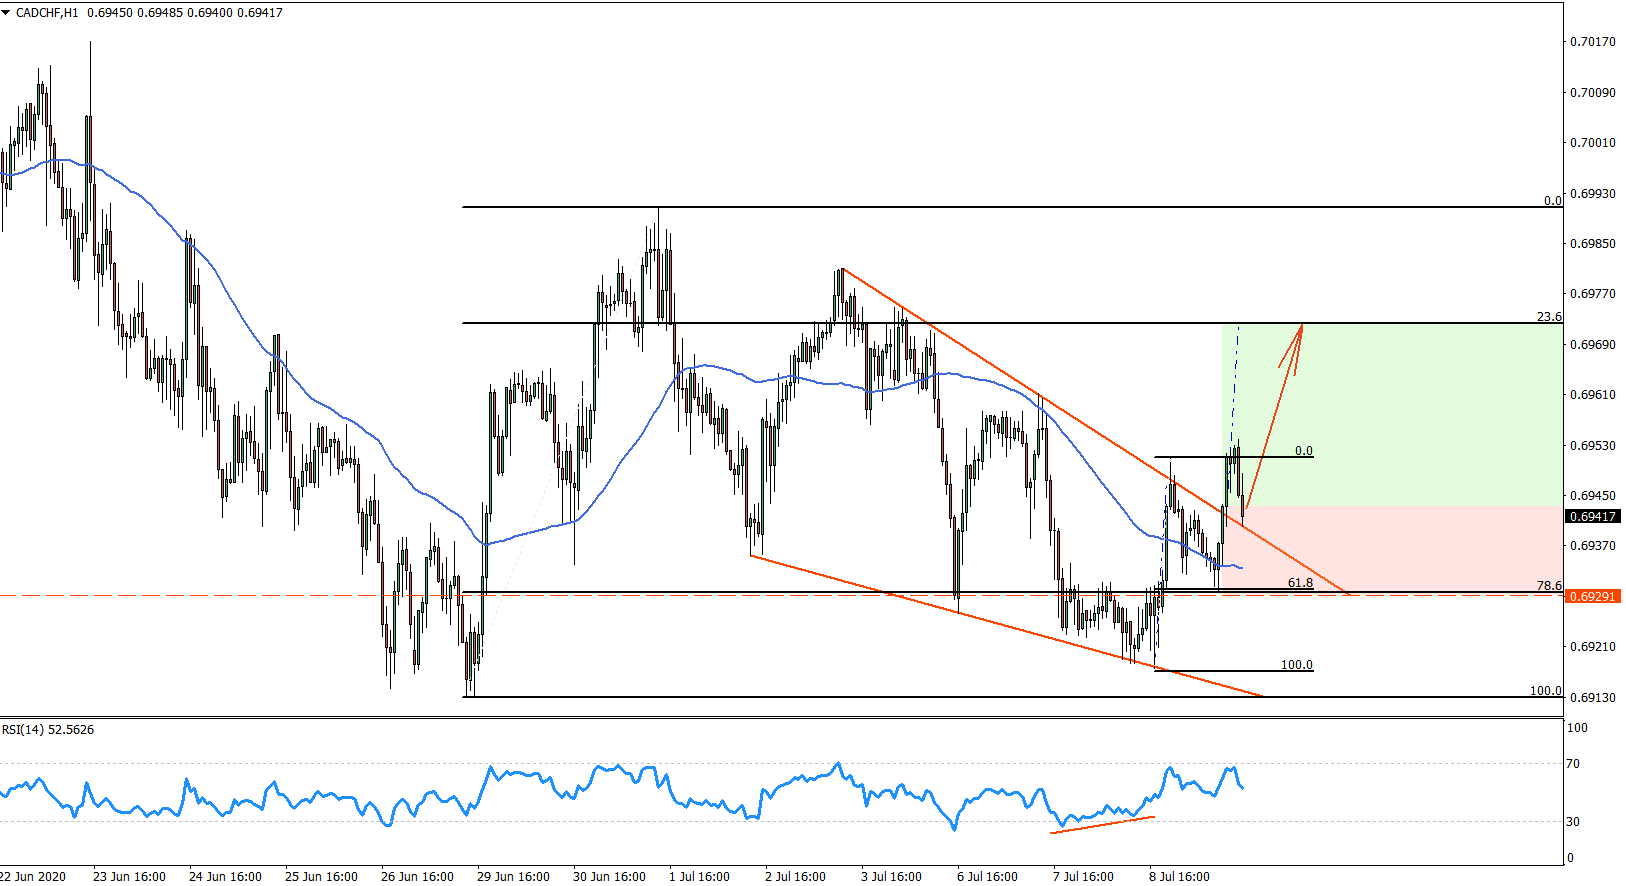 CADCHF Hourly Chart July 9th 2020